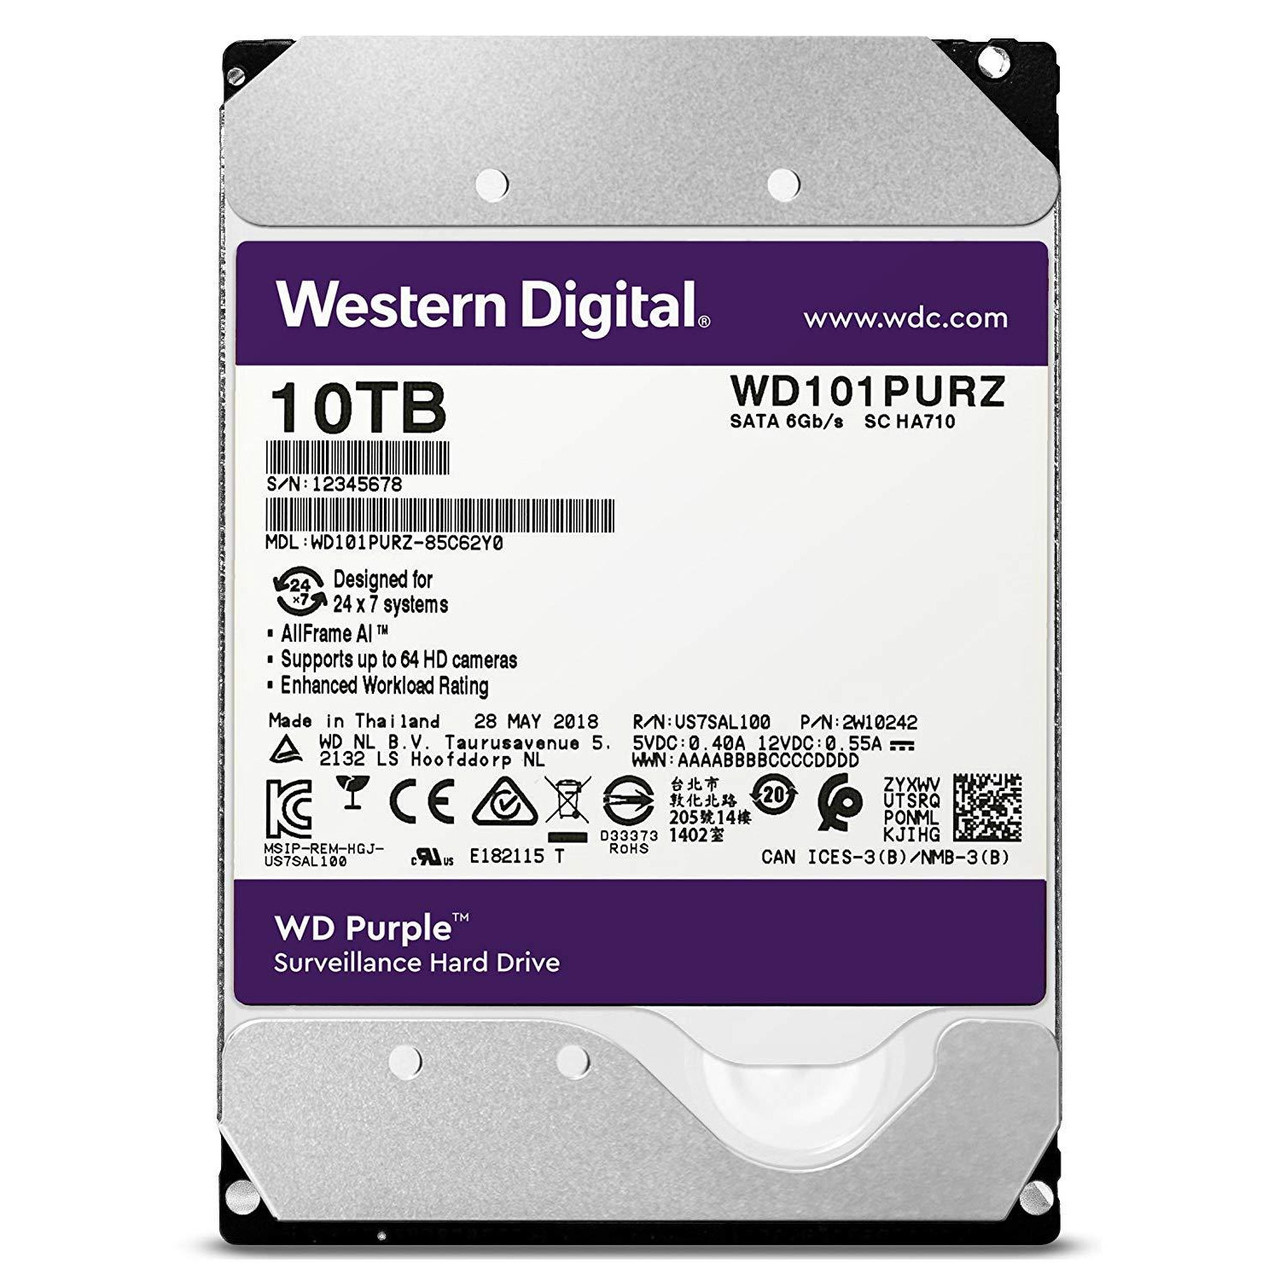 Жесткий диск для видеонаблюдения HDD 10Tb Western Digital Purple Surveillance SATA 7200rpm WD101PURZ